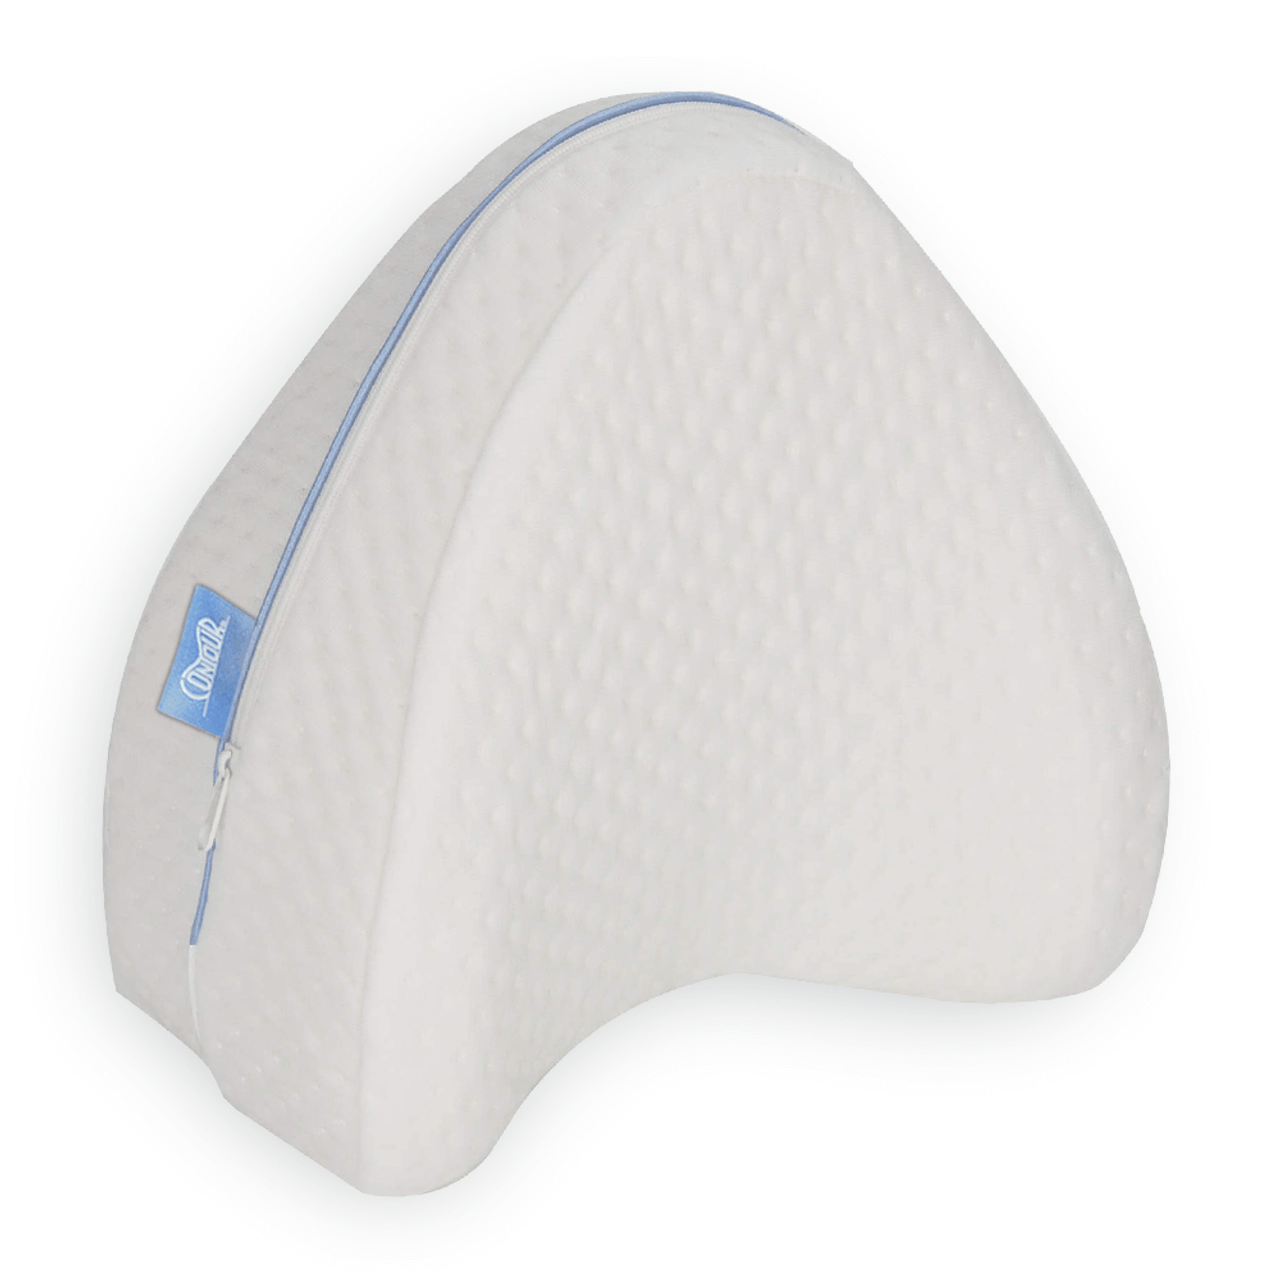 Contour Legacy Leg Pillow For Side Sleepers